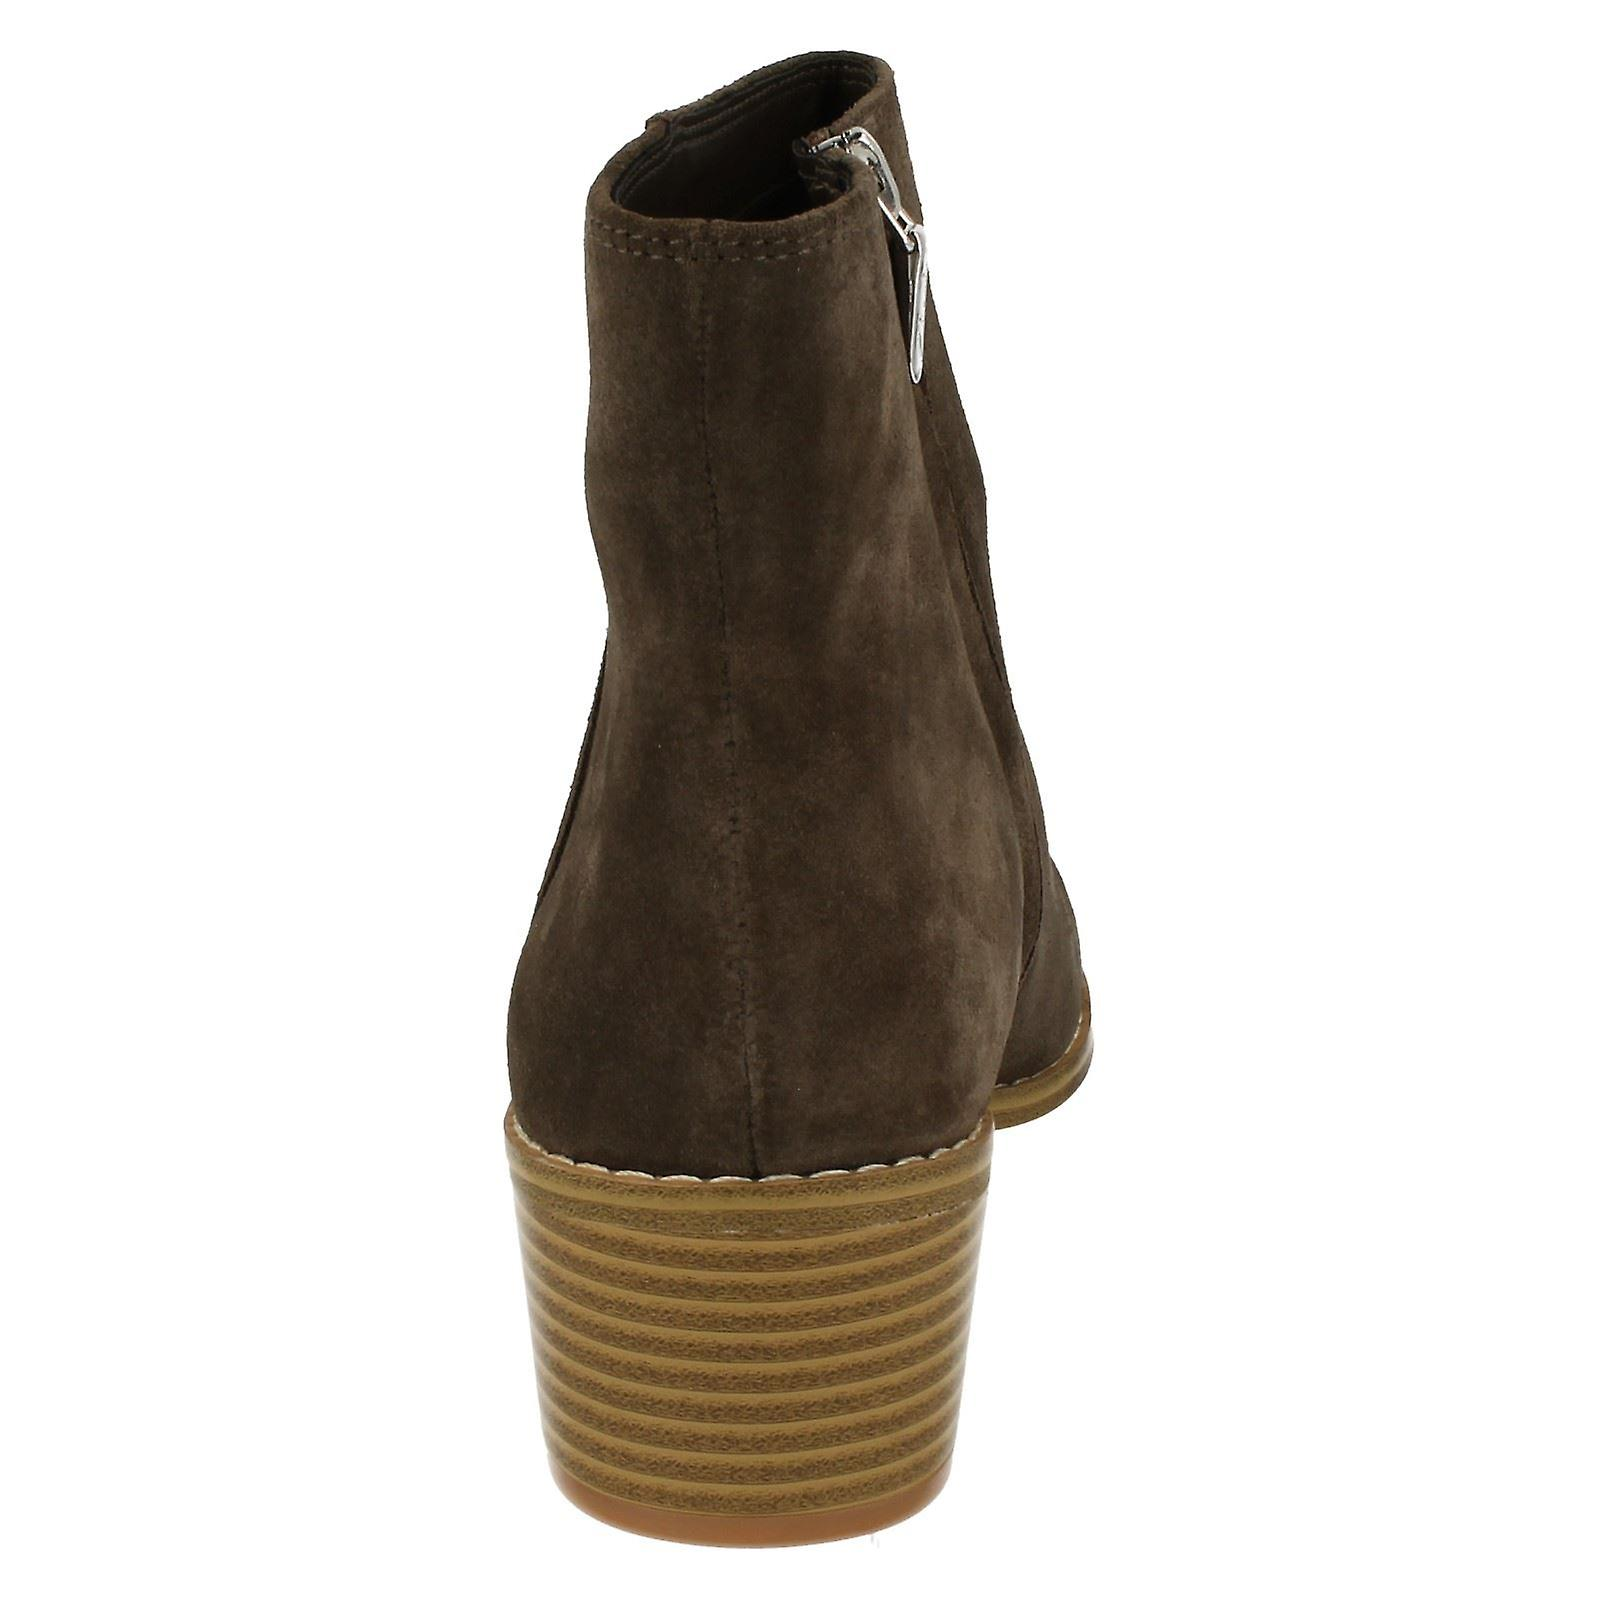 Mesdames Clarks Ranch Style Cheville Bottes Breccan Mythe